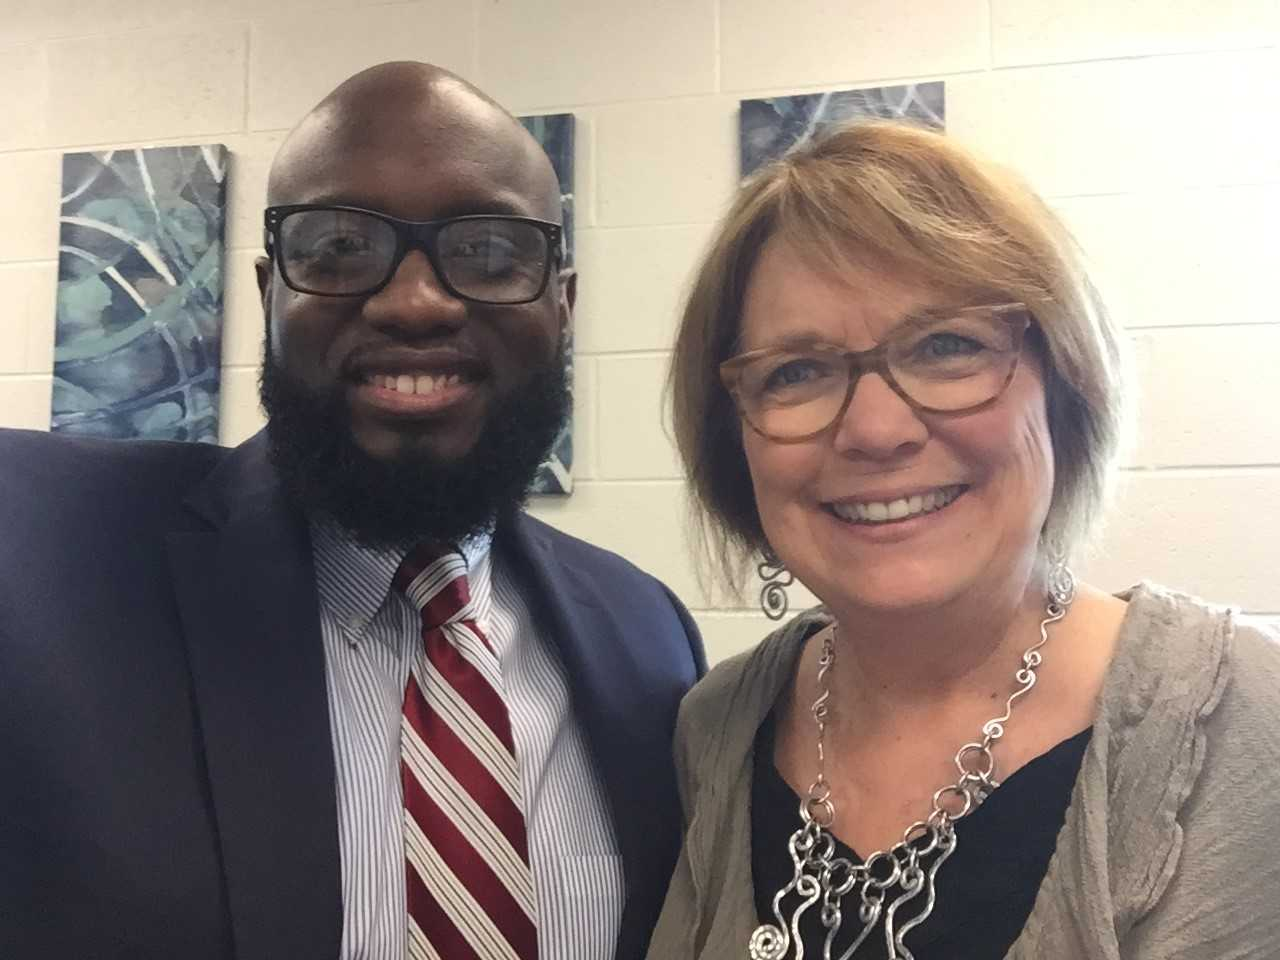 A Photo With Principal Goodman And His Focused Schools Coach, Kathy Crum